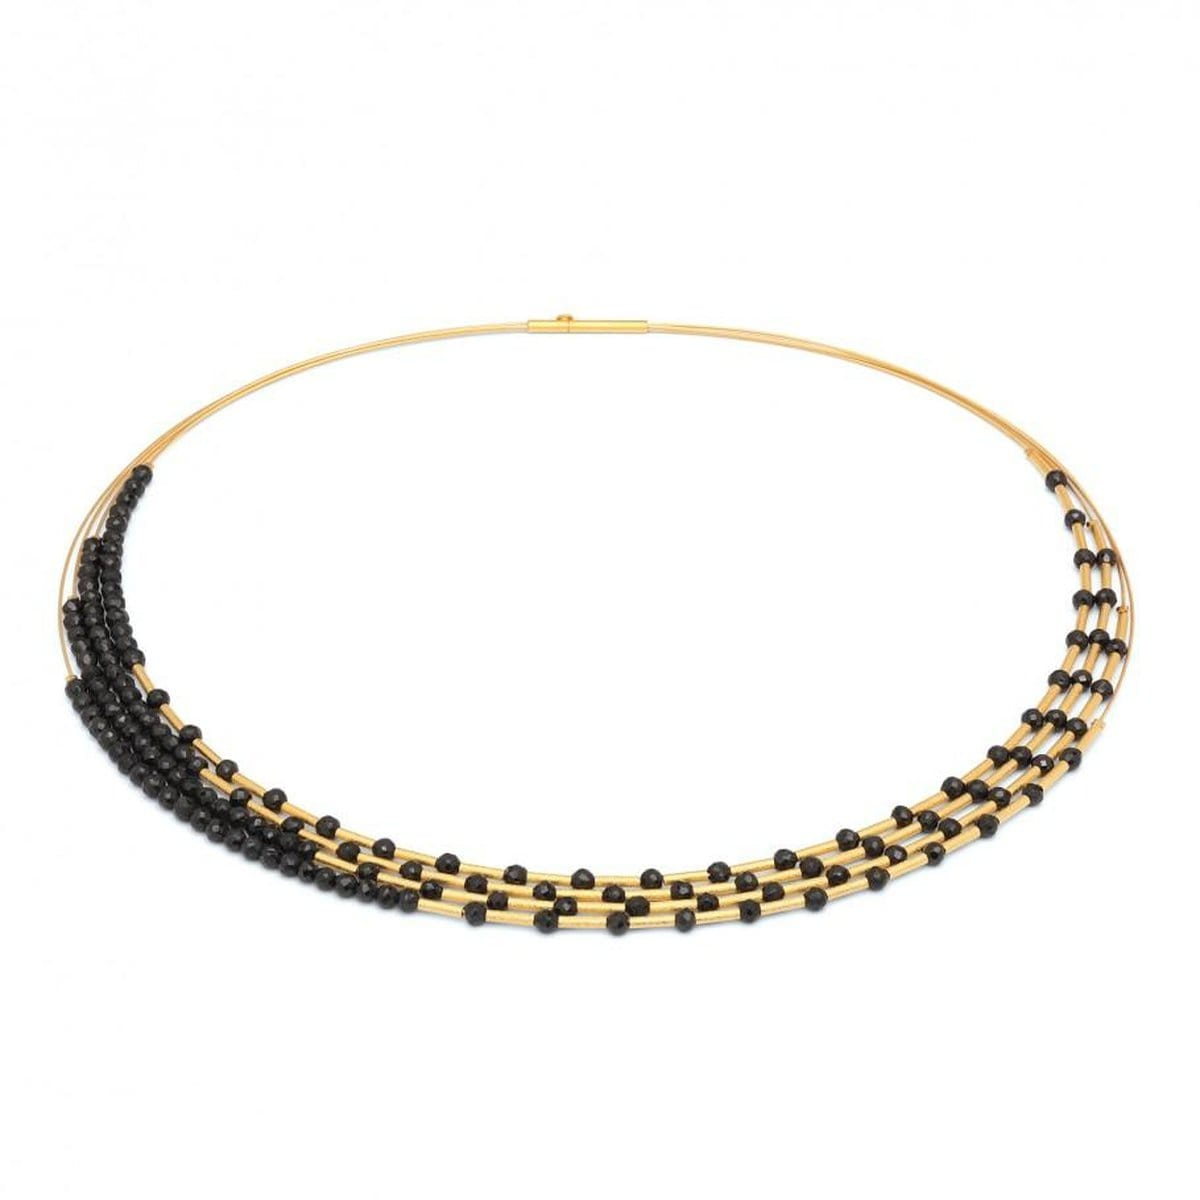 Cleama Black Spinel Necklace - 85372496-Bernd Wolf-Renee Taylor Gallery